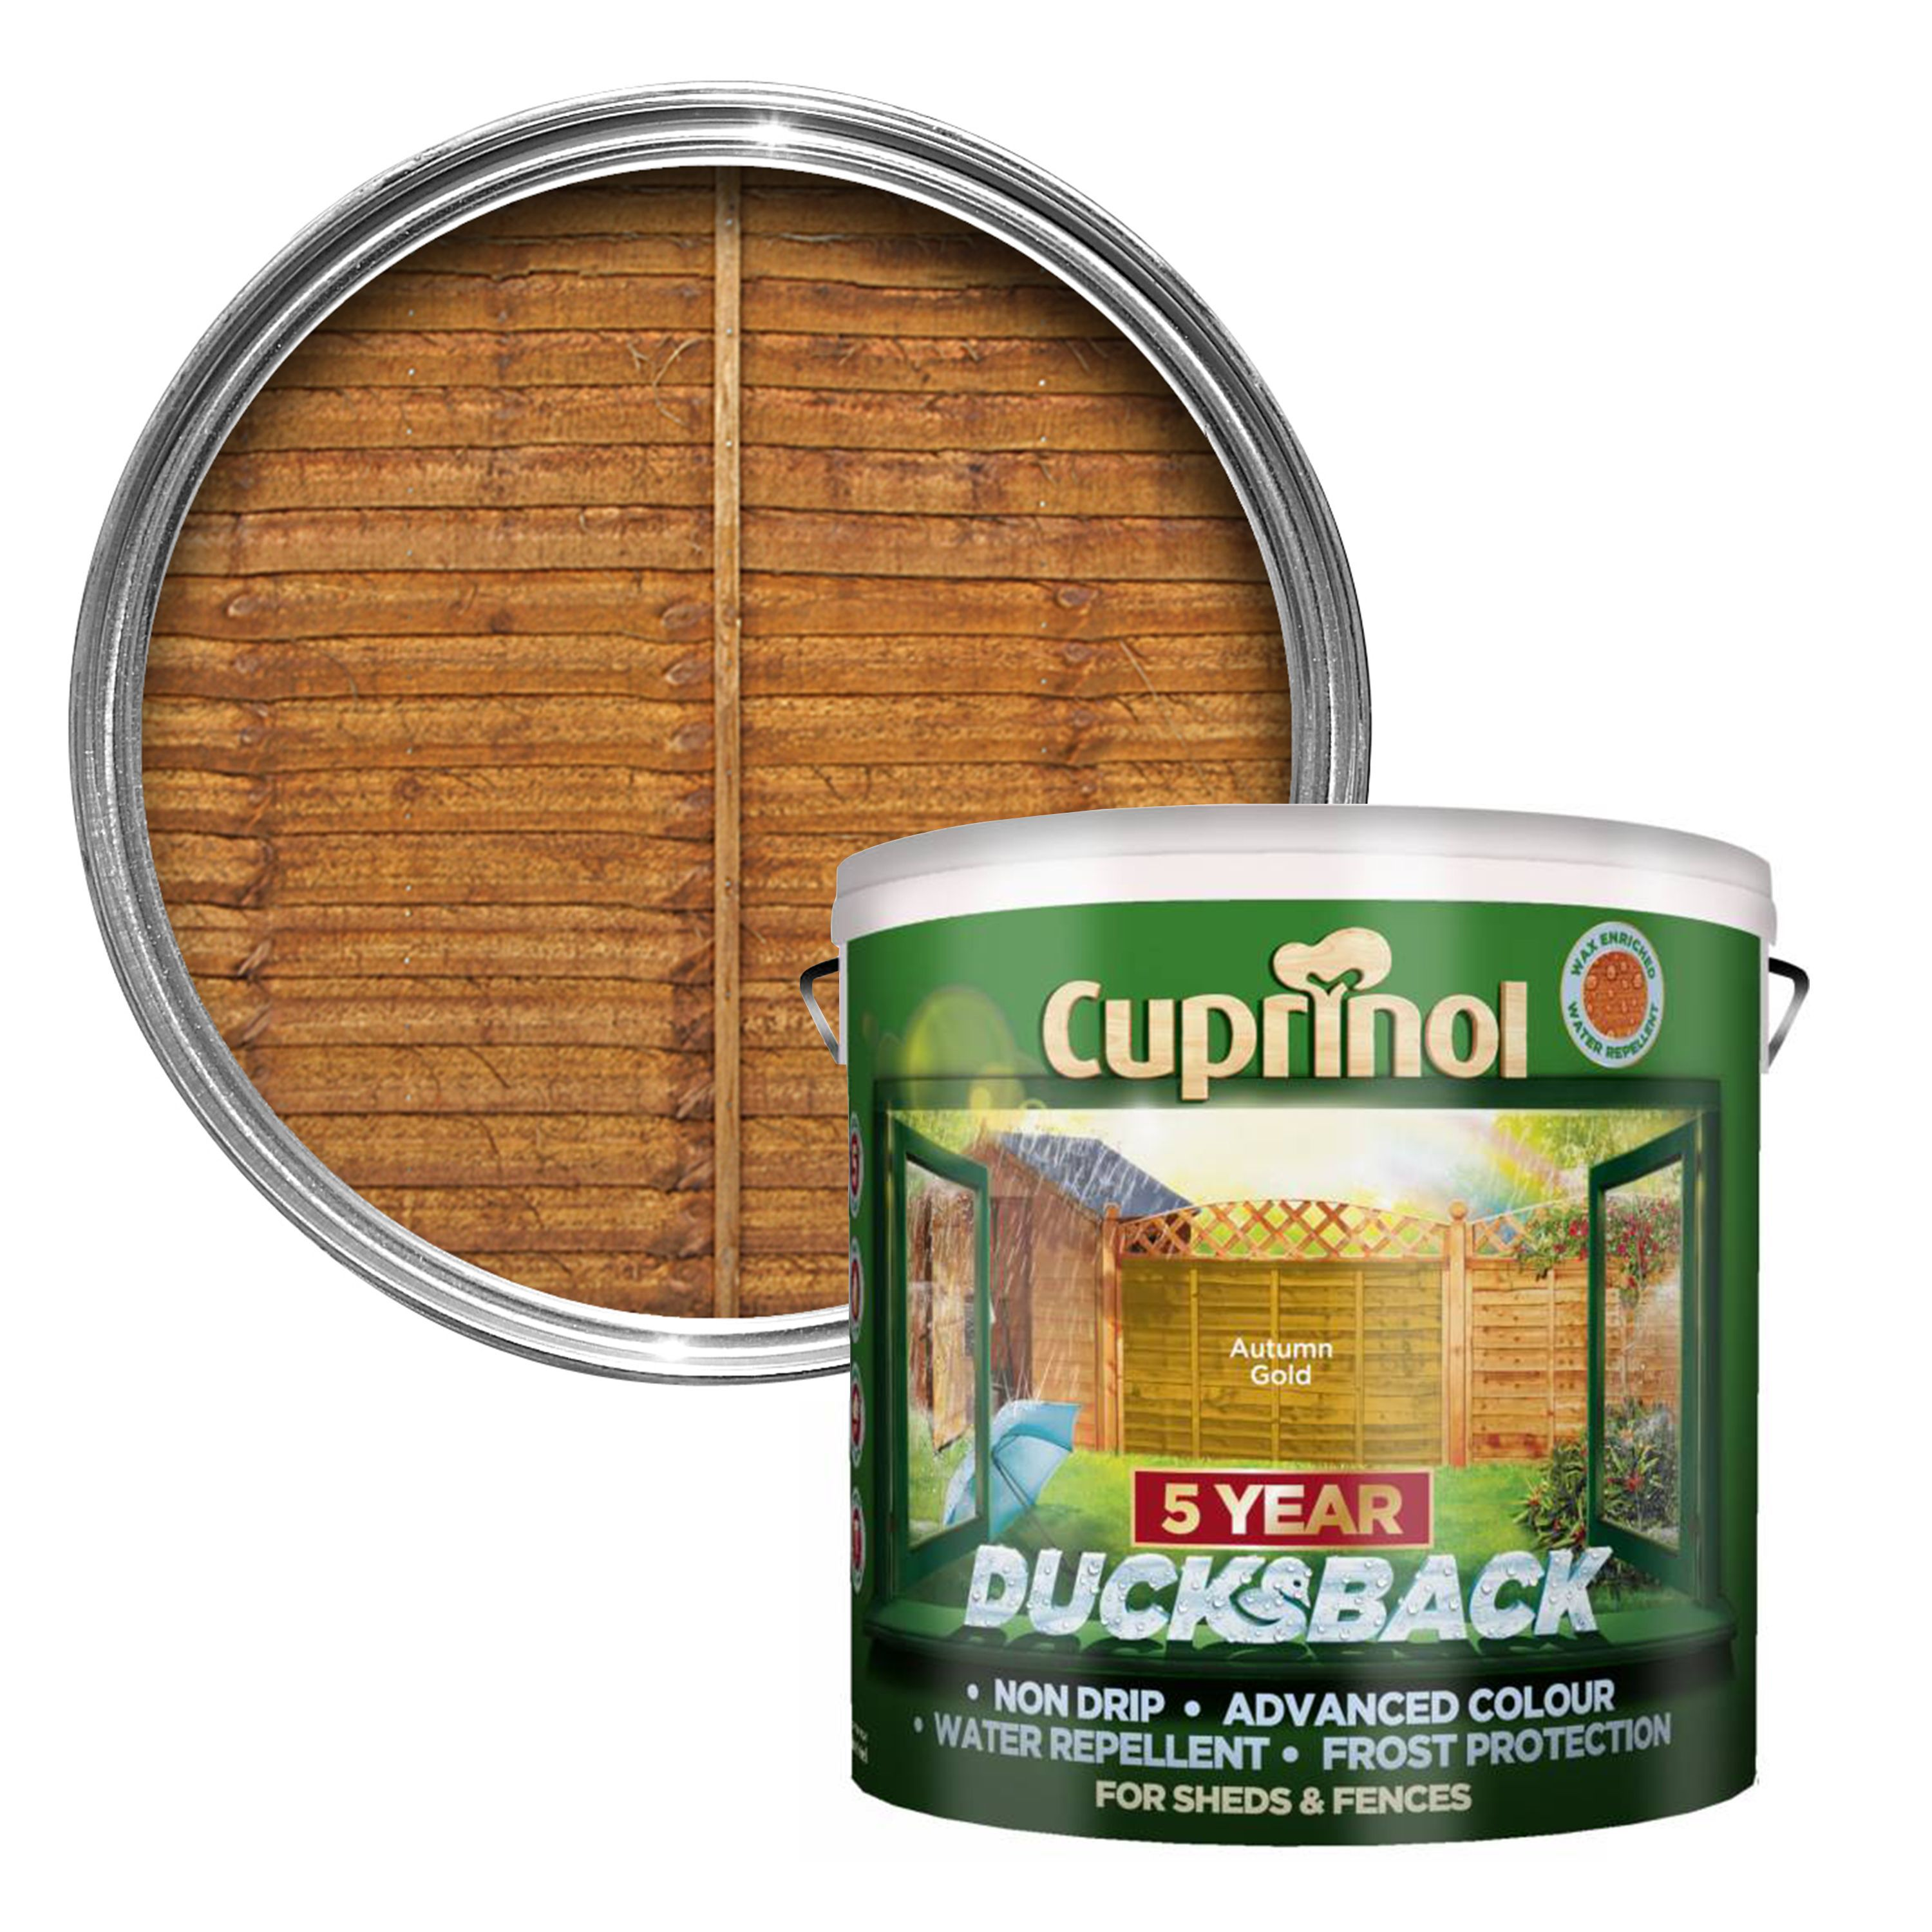 Cuprinol 5 Year Ducksback Autumn Gold Shed Amp Fence